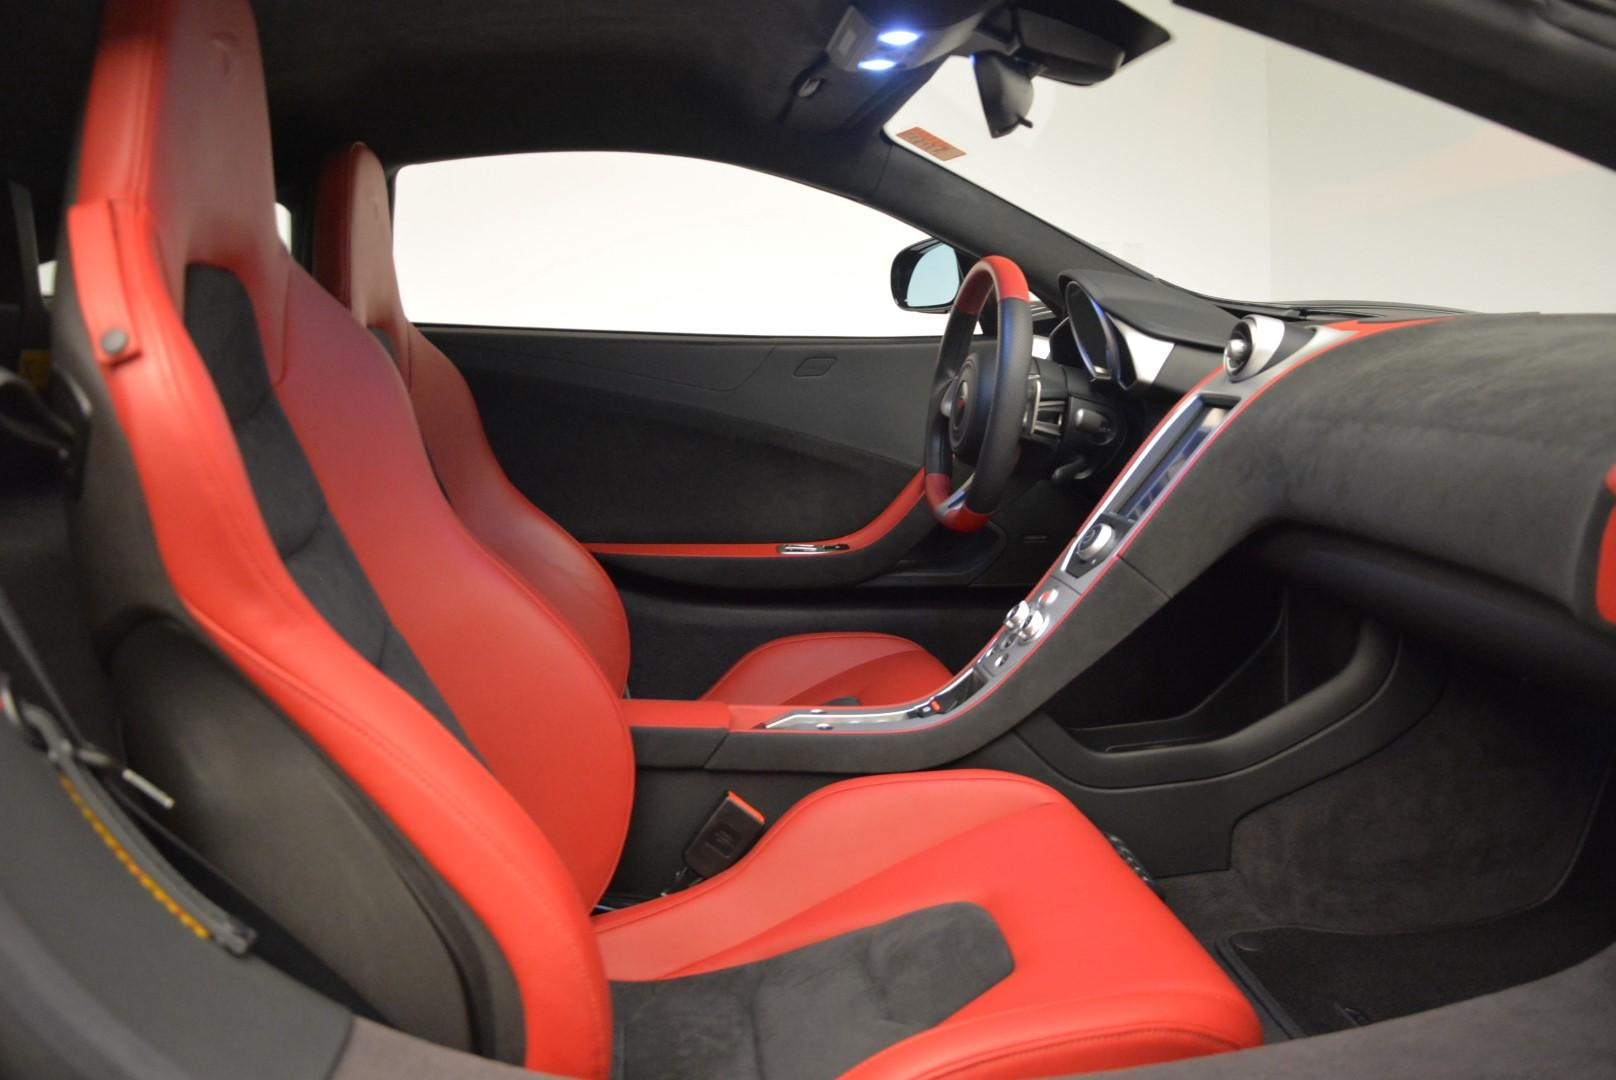 Used 2012 McLaren MP4-12c Coupe For Sale In Greenwich, CT. Alfa Romeo of Greenwich, 3155 70_p19